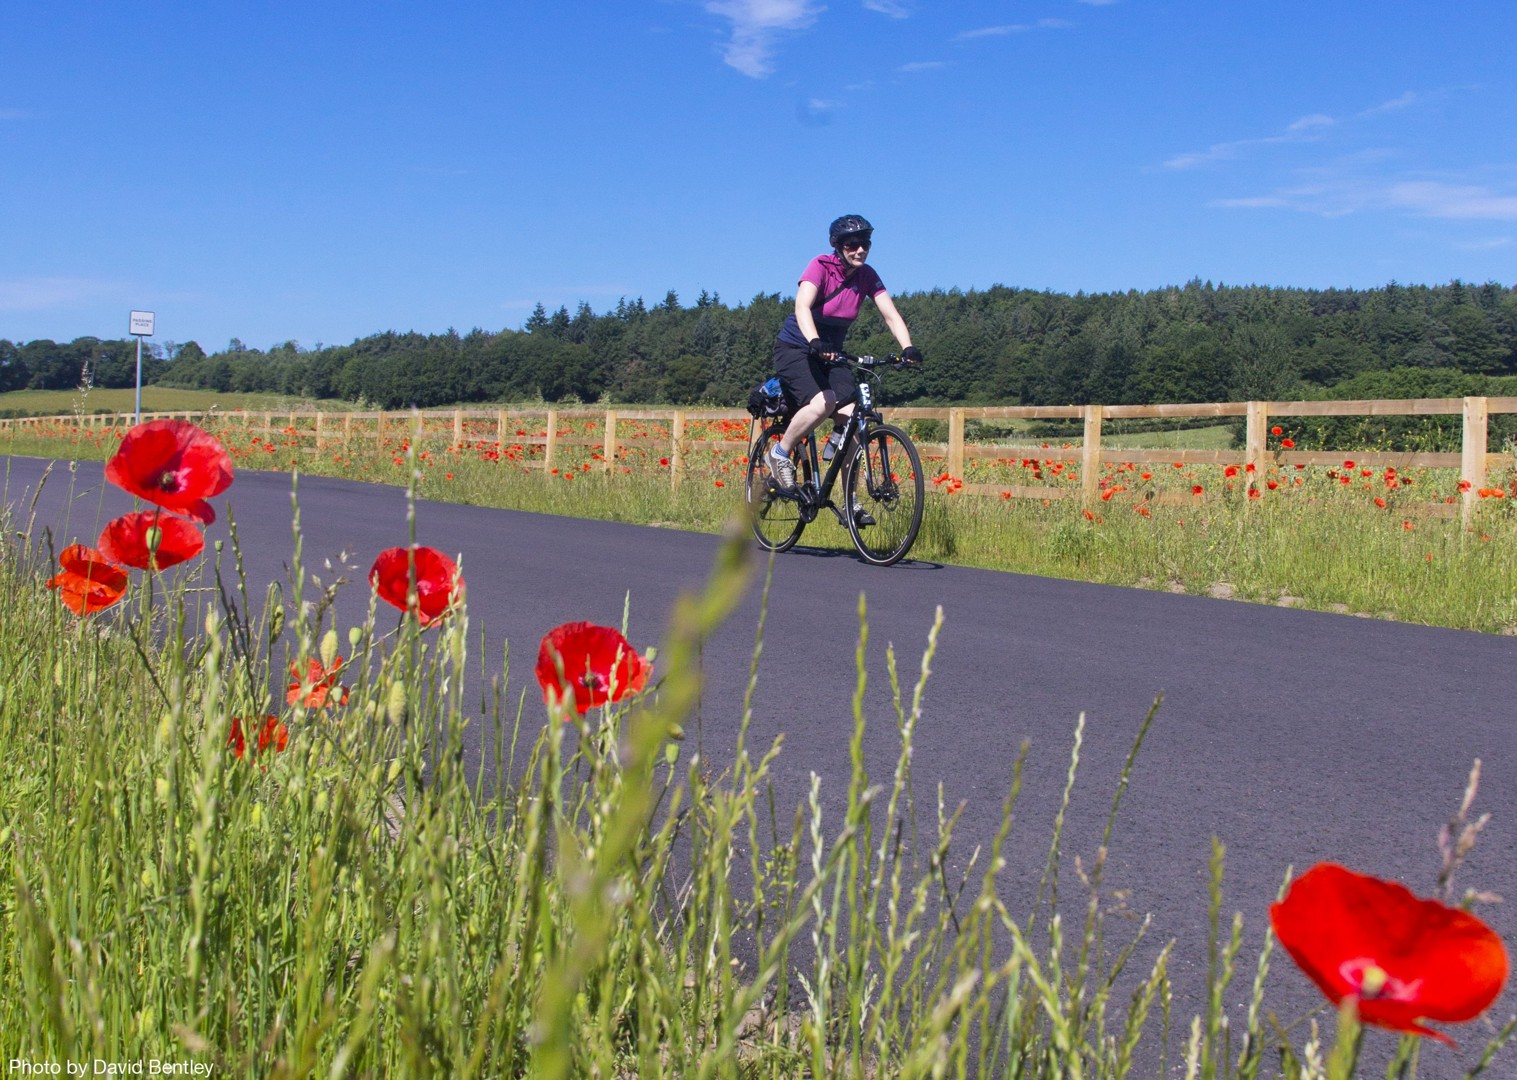 Self-Guided-Leisure-Cycling-Holiday-Hadrians-Cycleway-UK-take-a-break.jpg - UK - Hadrian's Cycleway - 2 Days Cycling - Self-Guided Leisure Cycling Holiday - Leisure Cycling